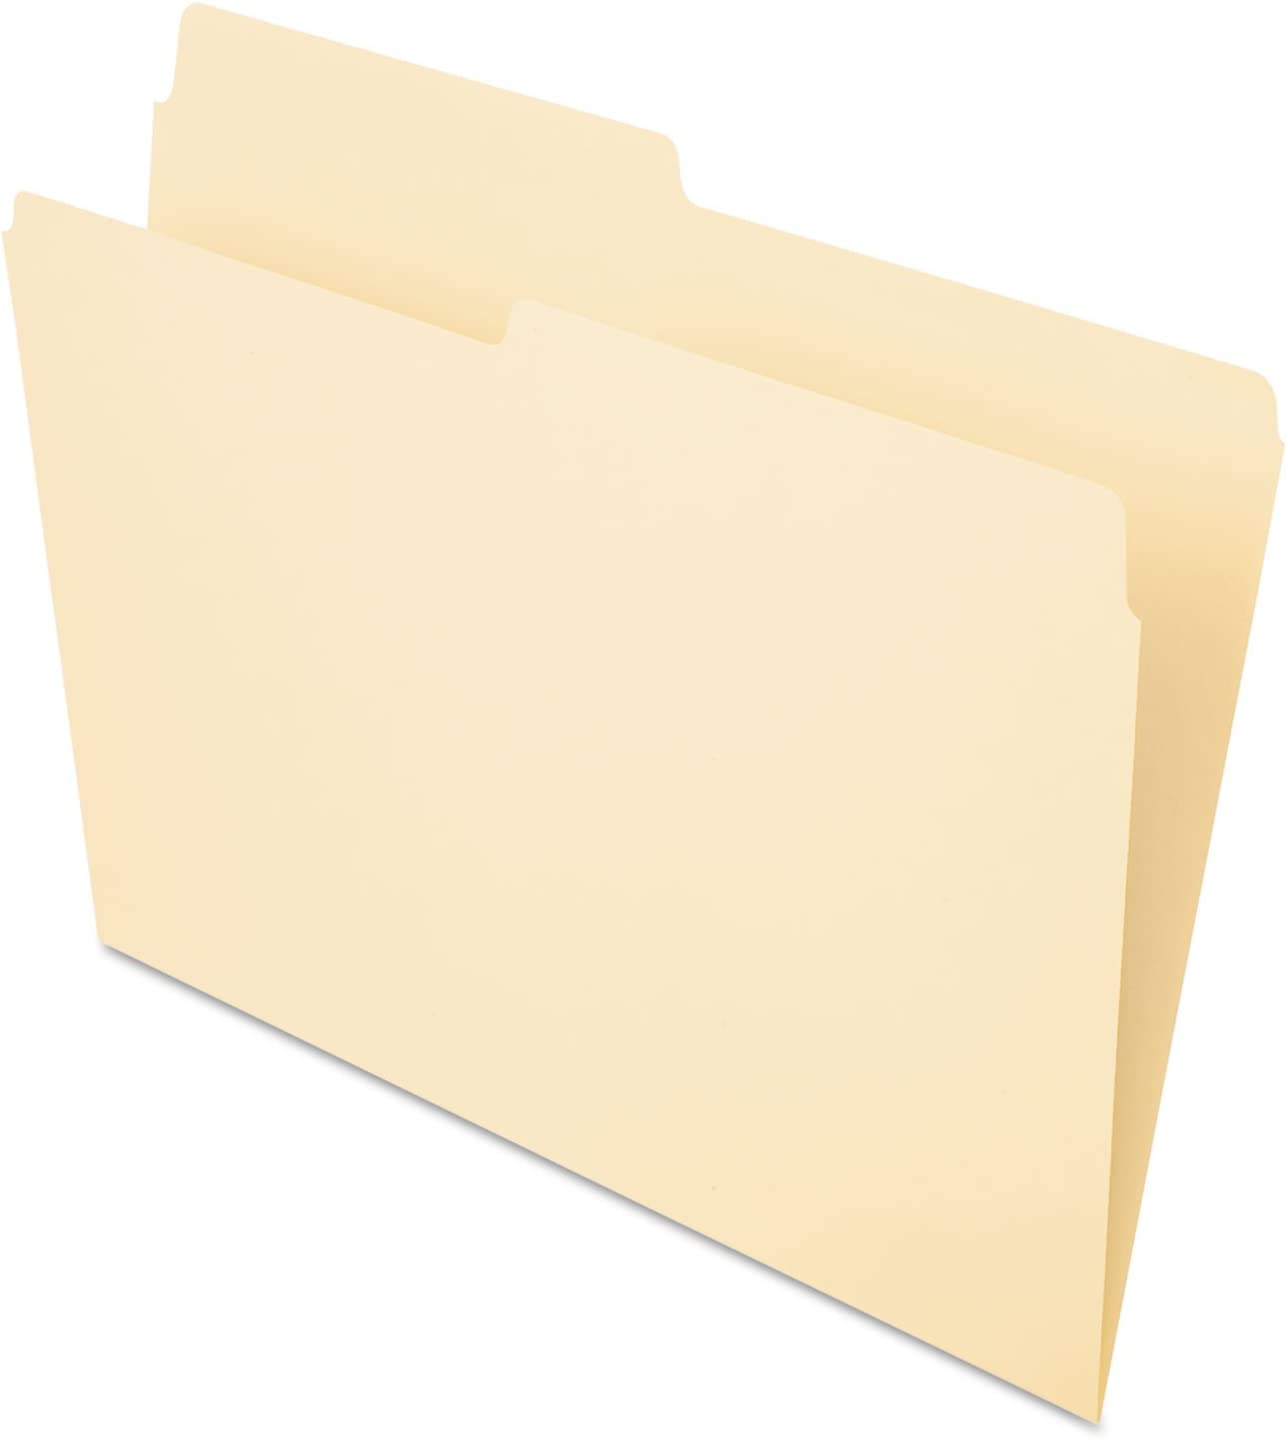 Pendaflex Essentials File Folder - 11 Letter Easy-to-use 8.50quot; Width x Max 72% OFF